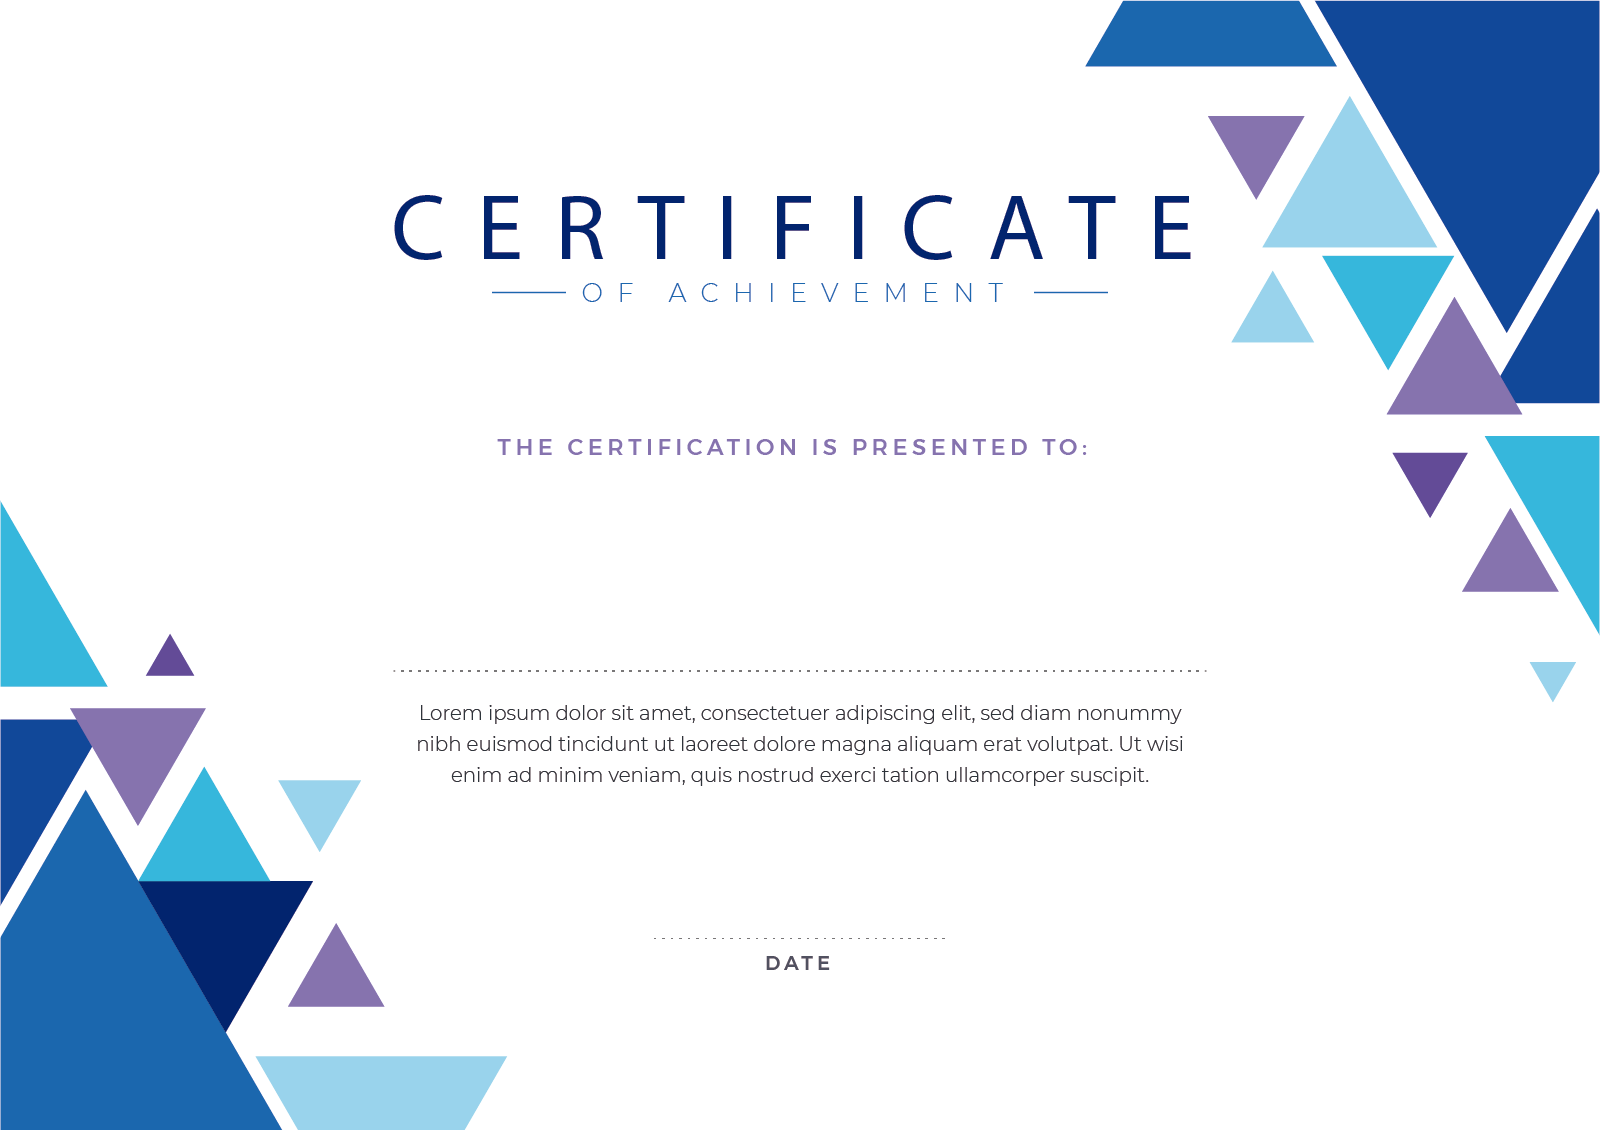 PDF certificate screenshot